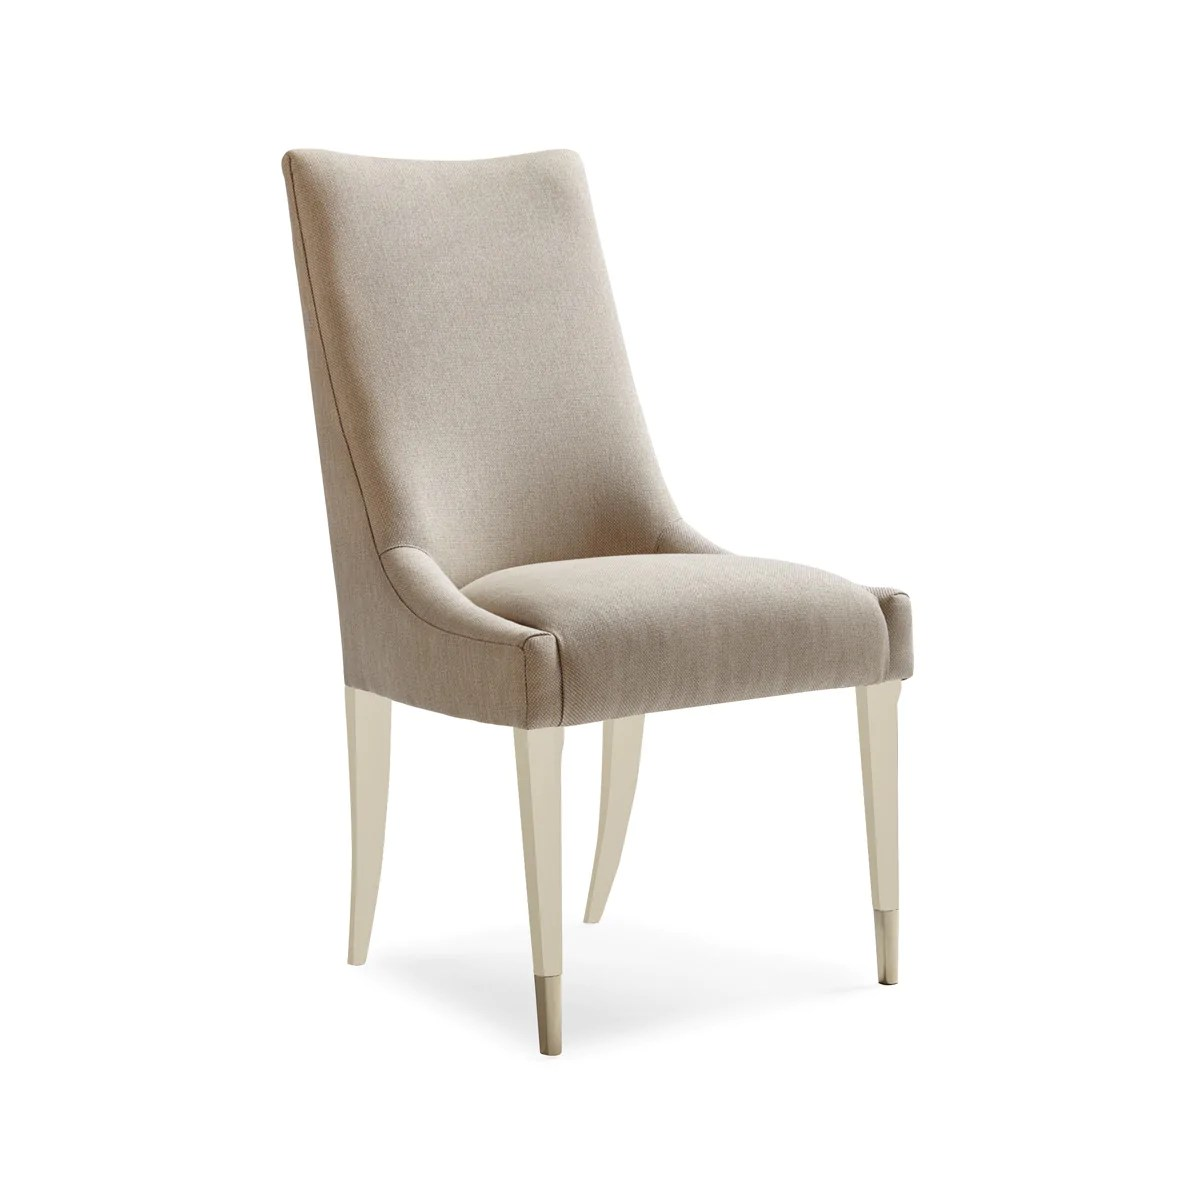 Taupe Dining Chairs Rundelle Slingback Dining Chair Taupe Max Sparrow